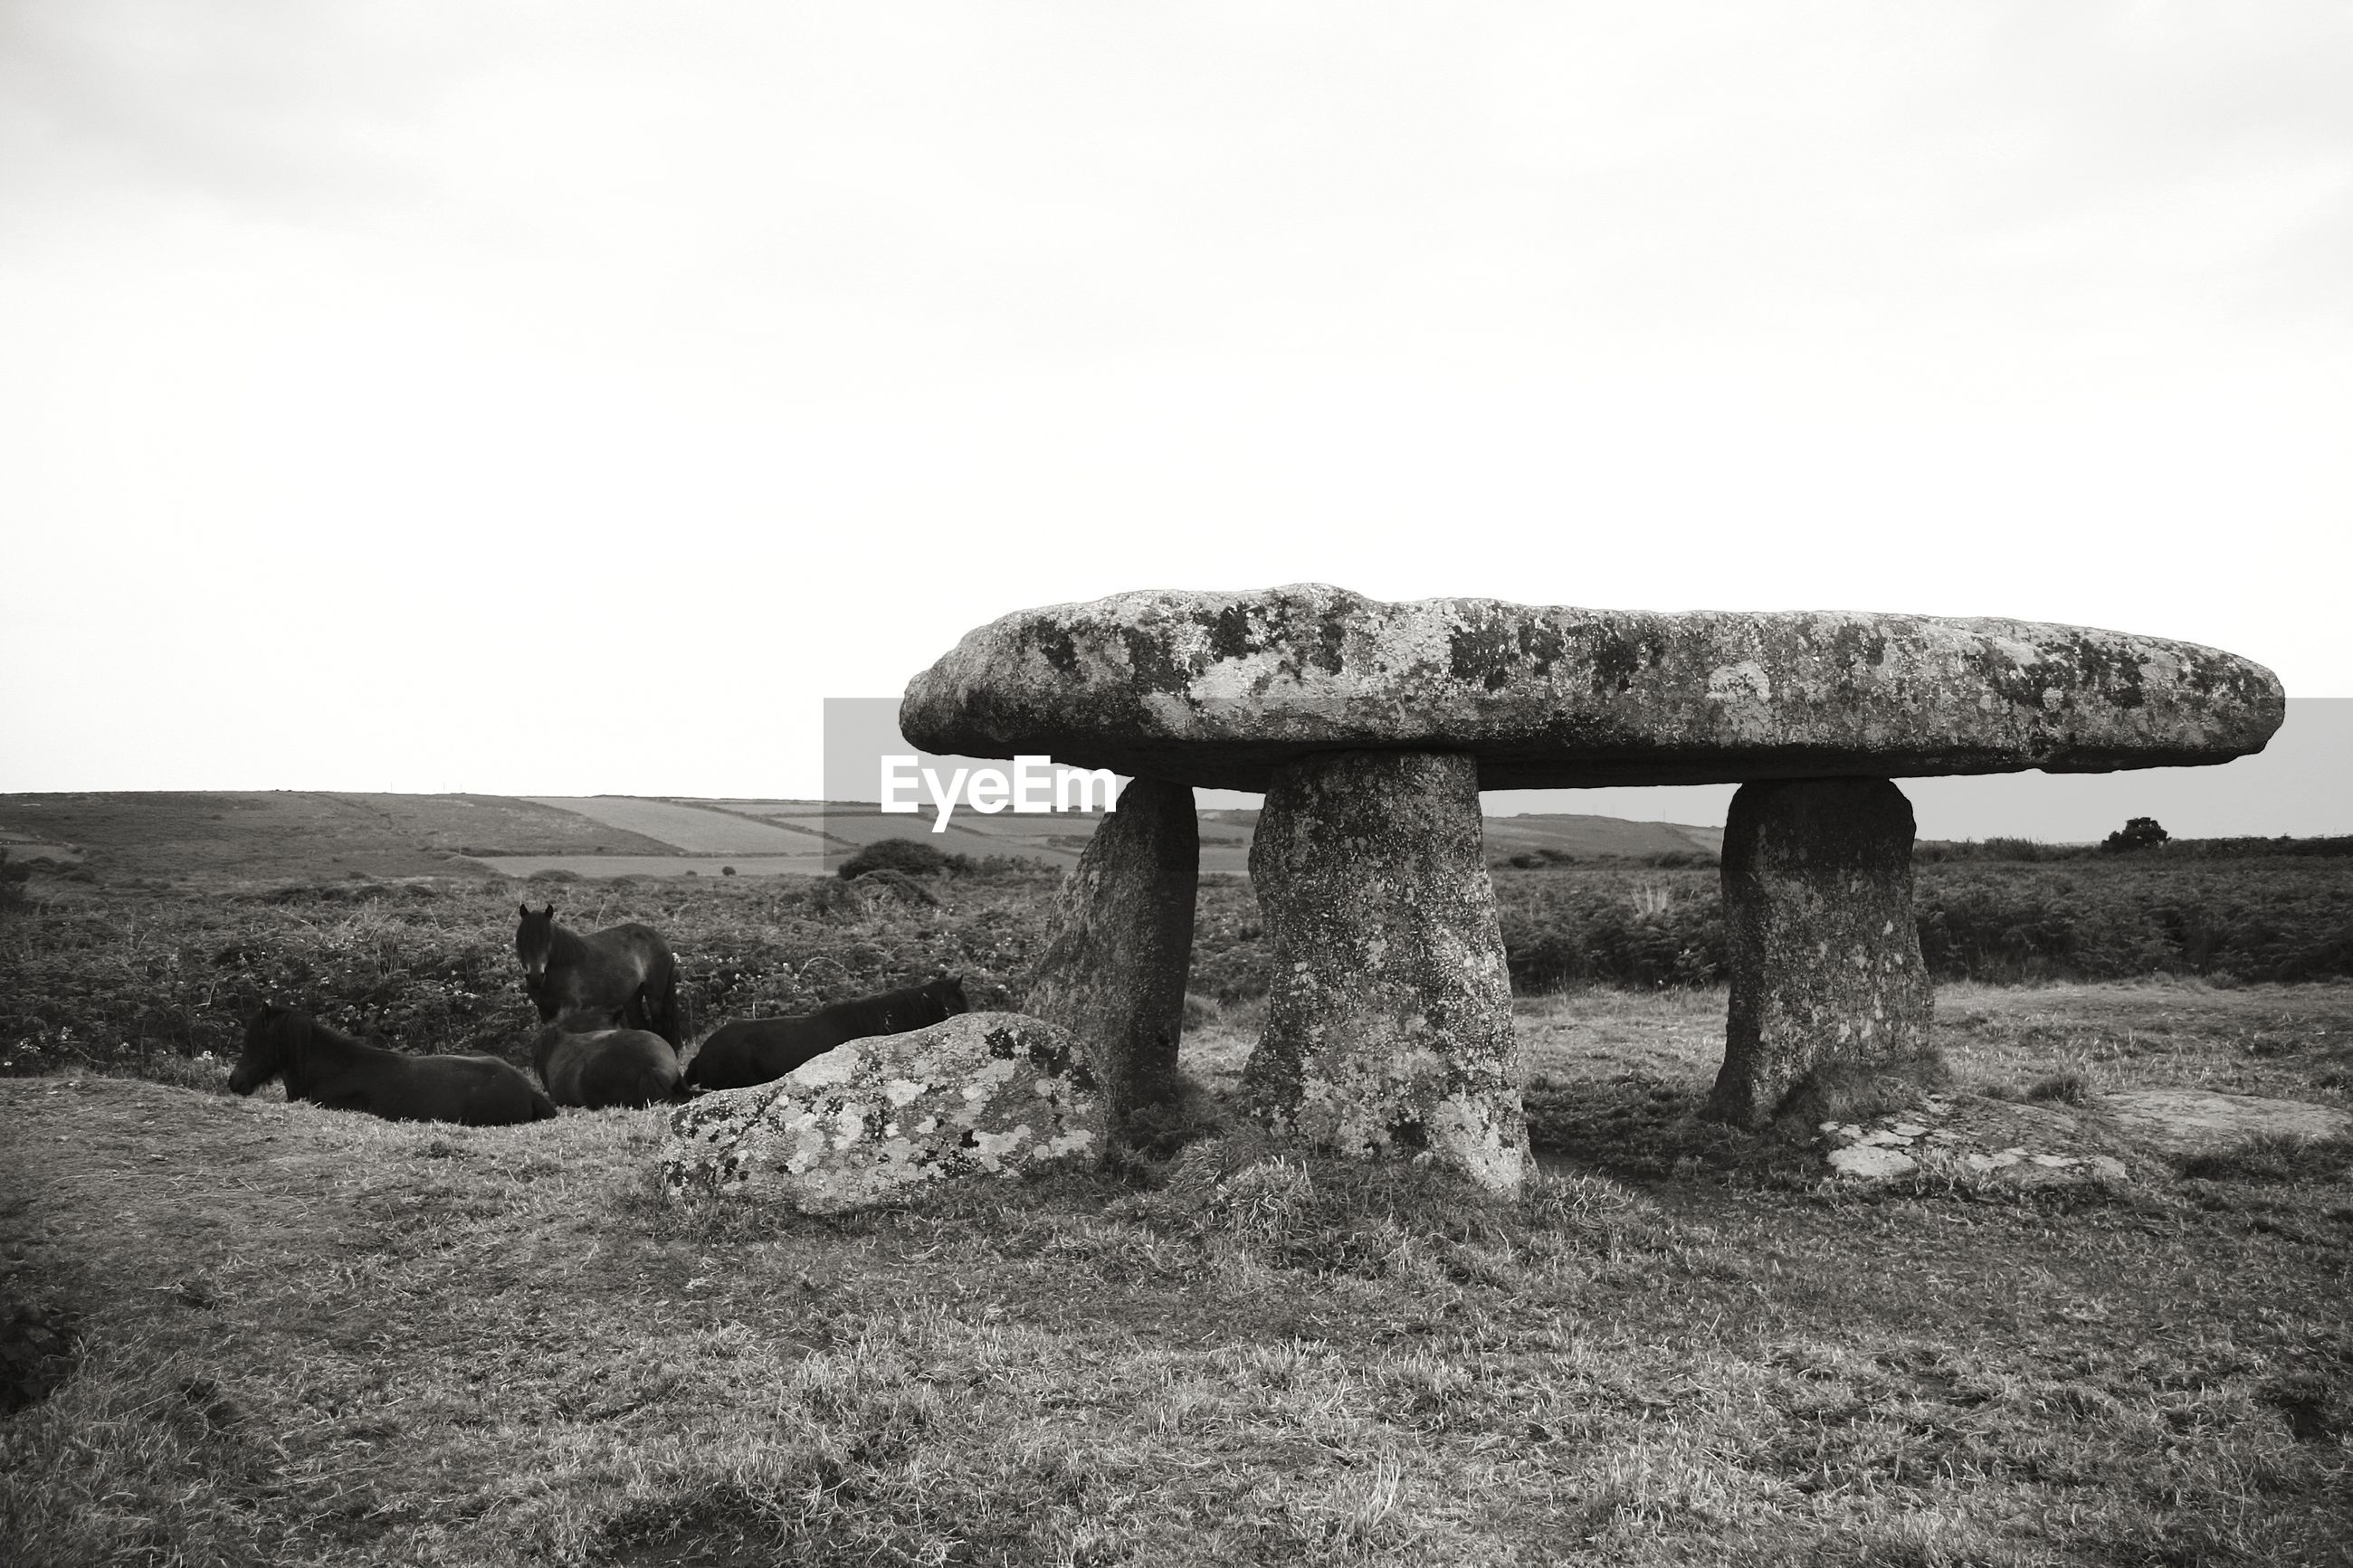 Stone structure on landscape against clear sky